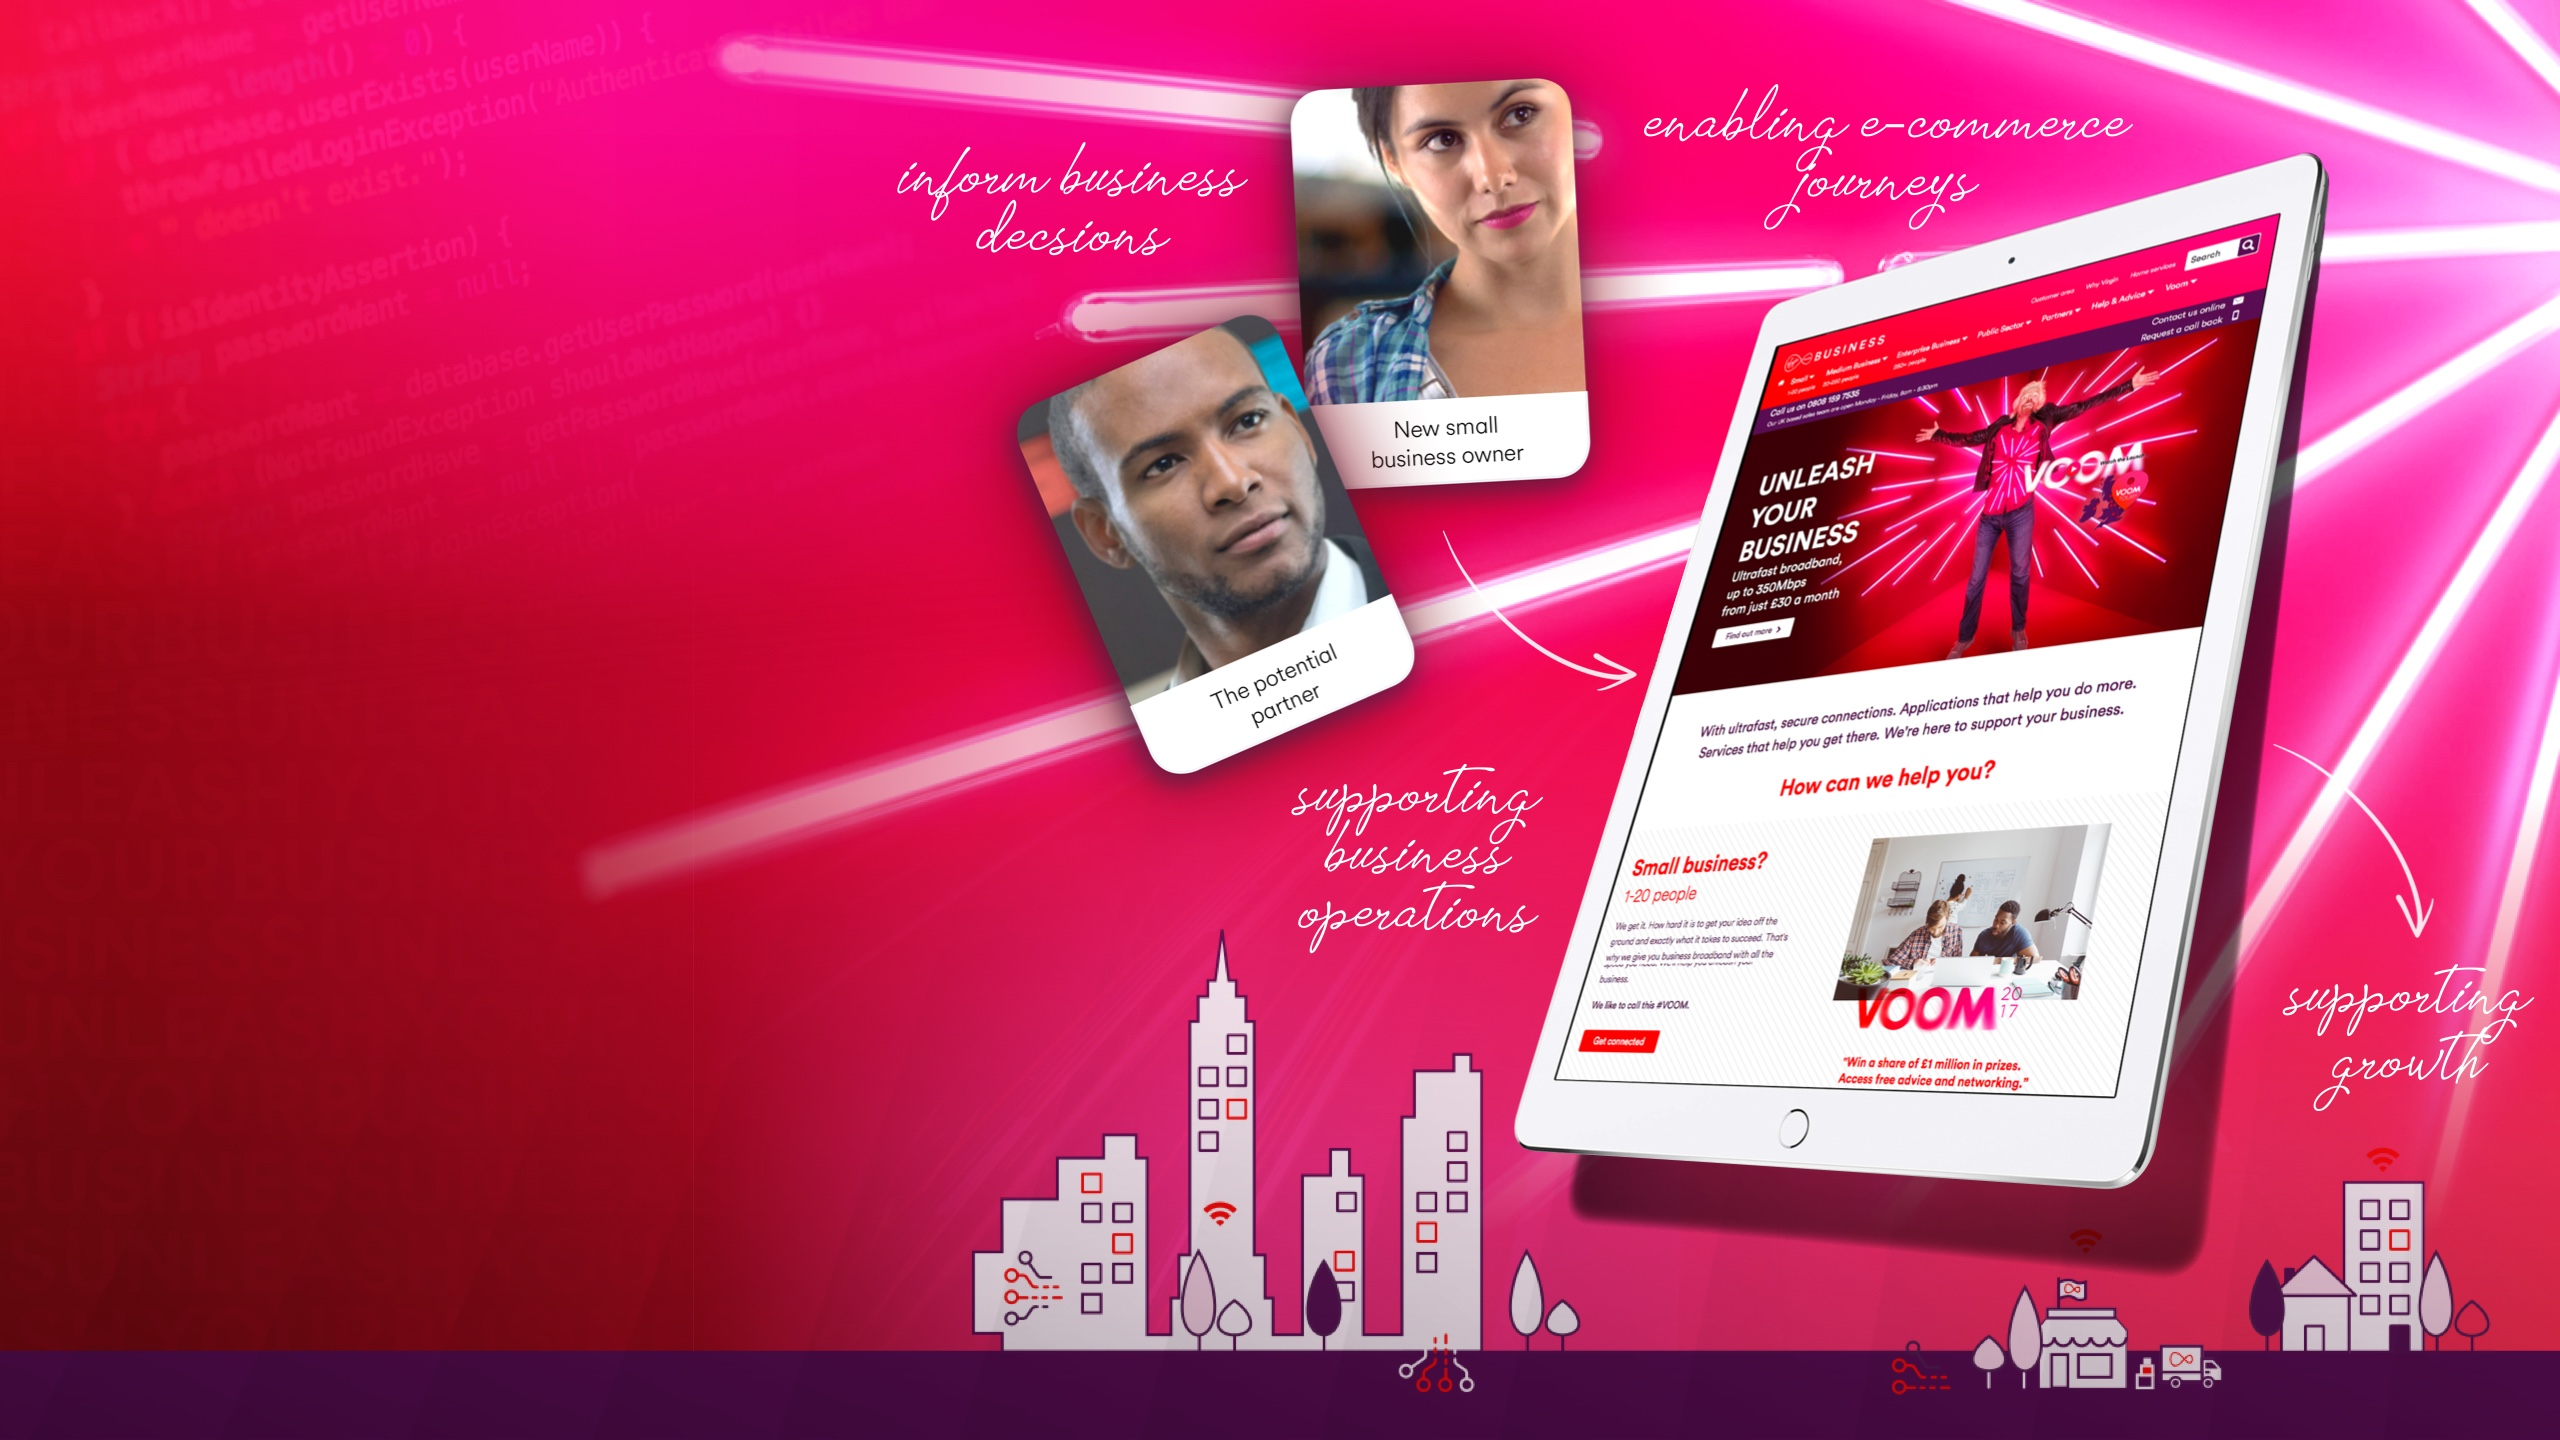 Red background with Virgin Media Business website displayed on an ipad